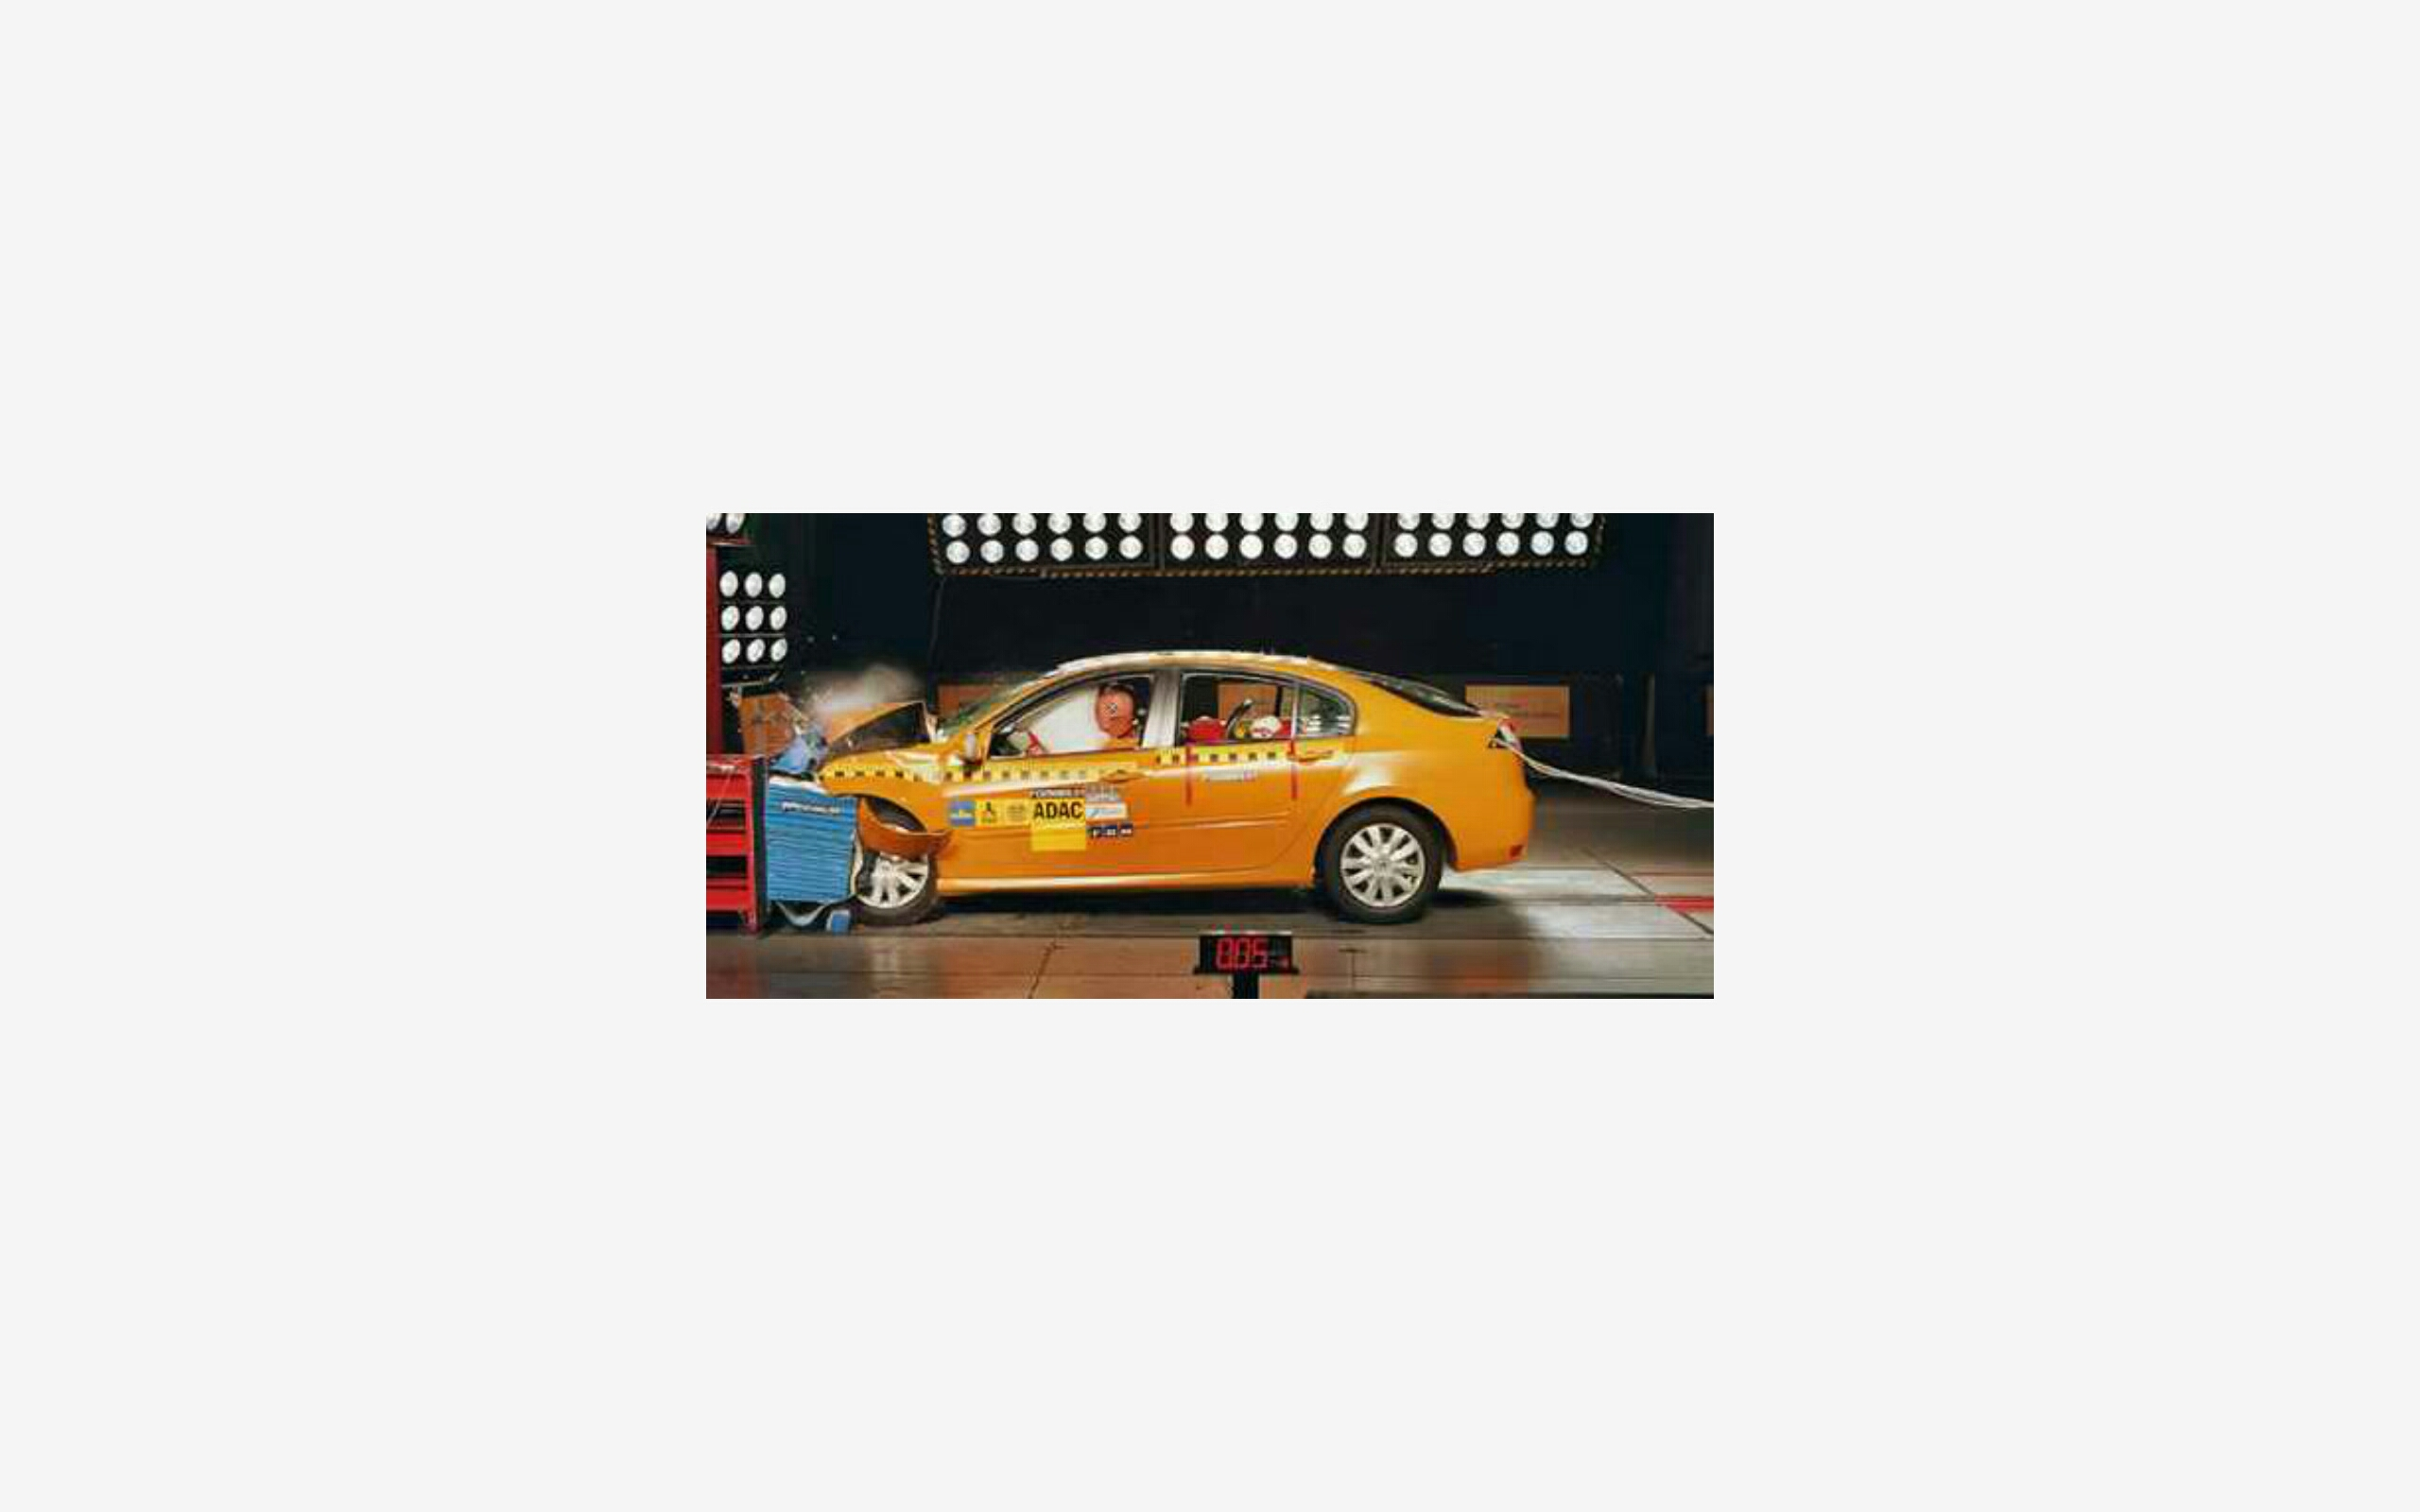 http://www.motorauthority.com/news/1023126_adac-50mph-crash-test-shows-weaknesses-even-in-top-rated-cars